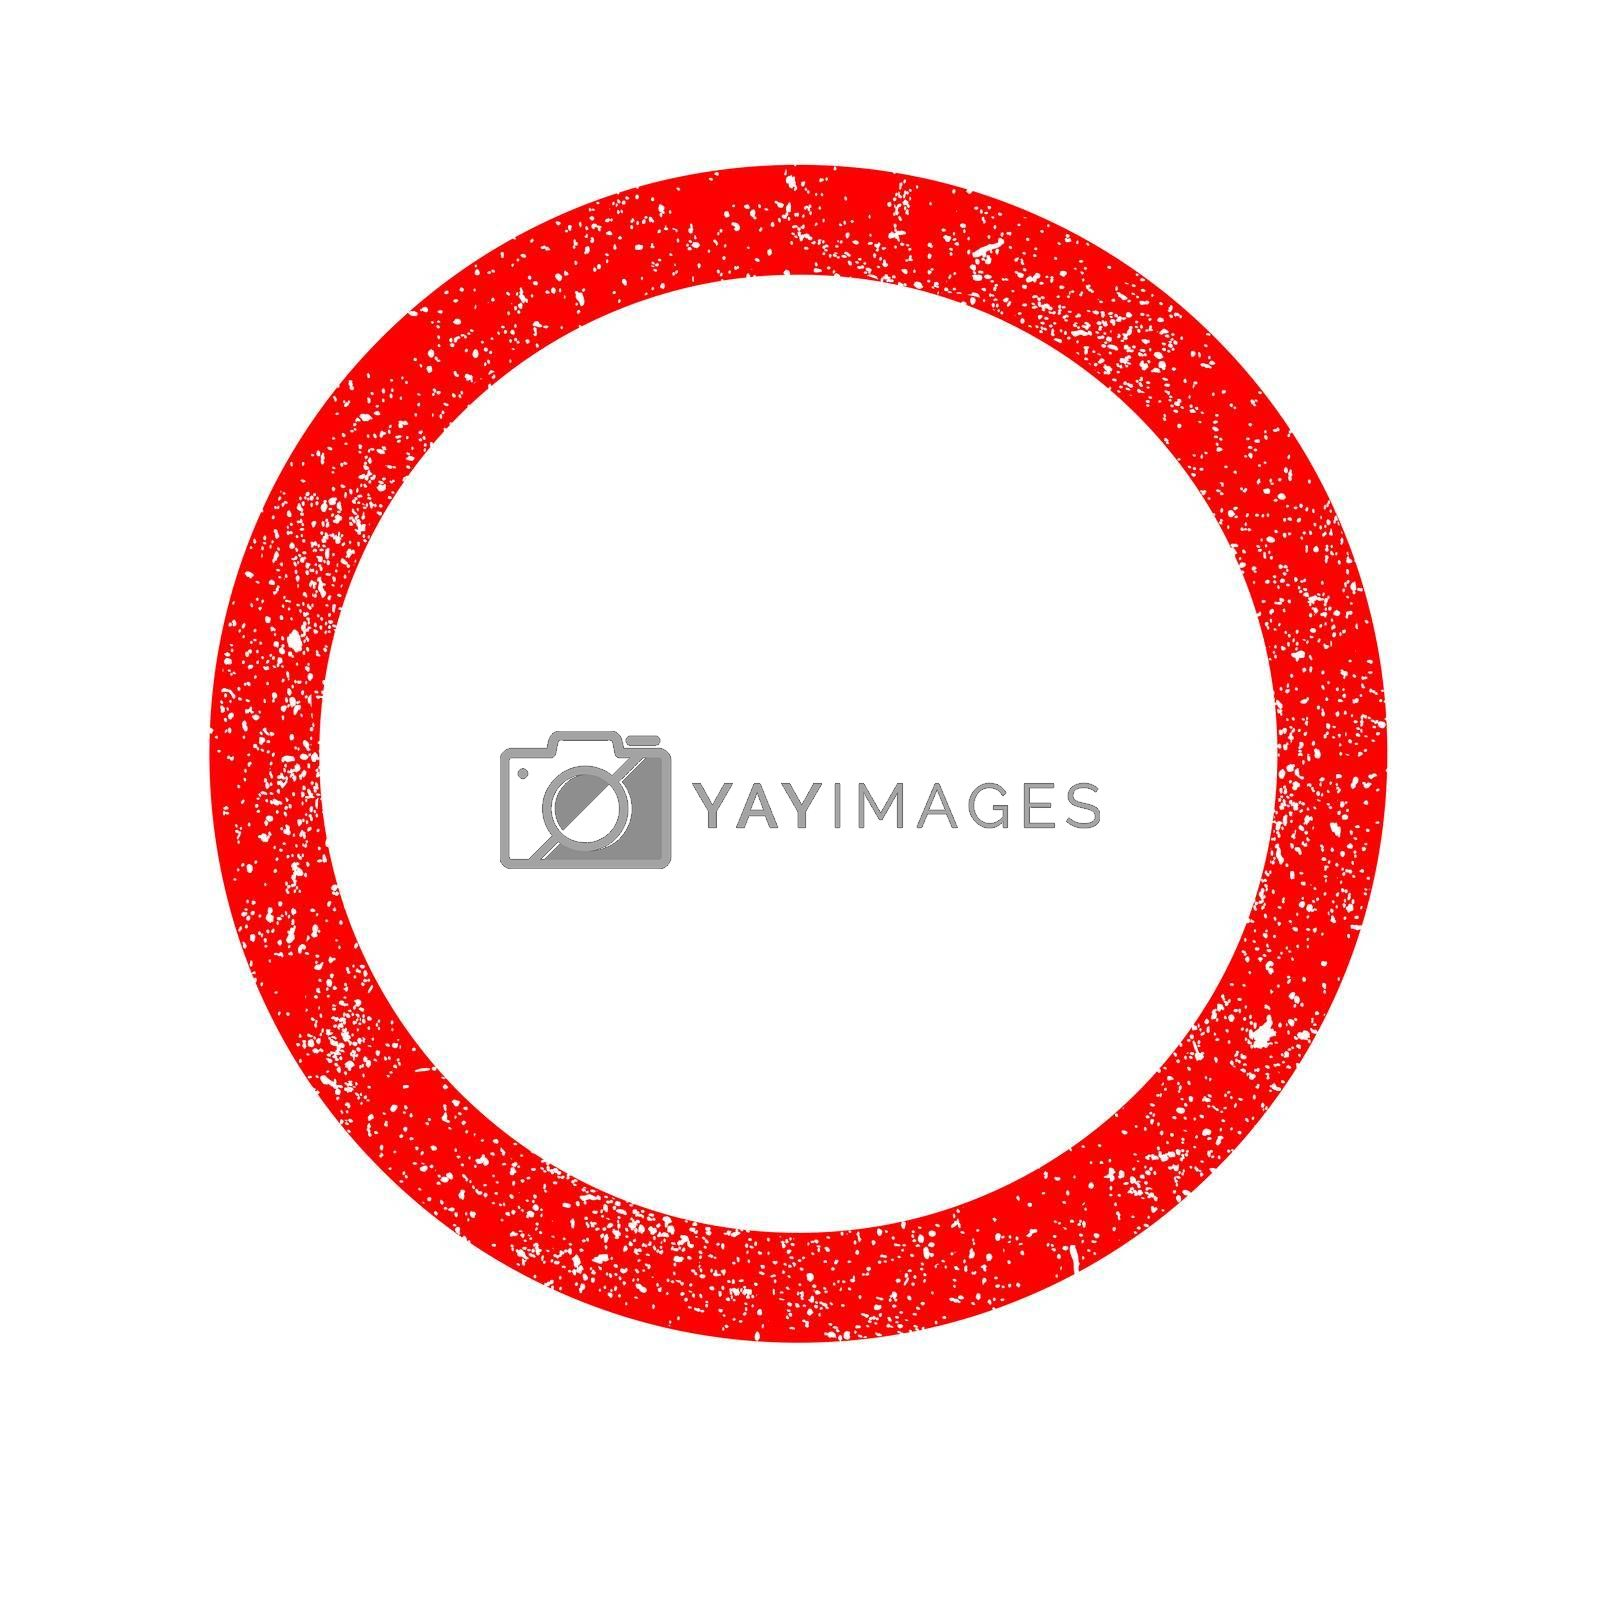 A rubber ink stamp circle in red with grunge effect over white